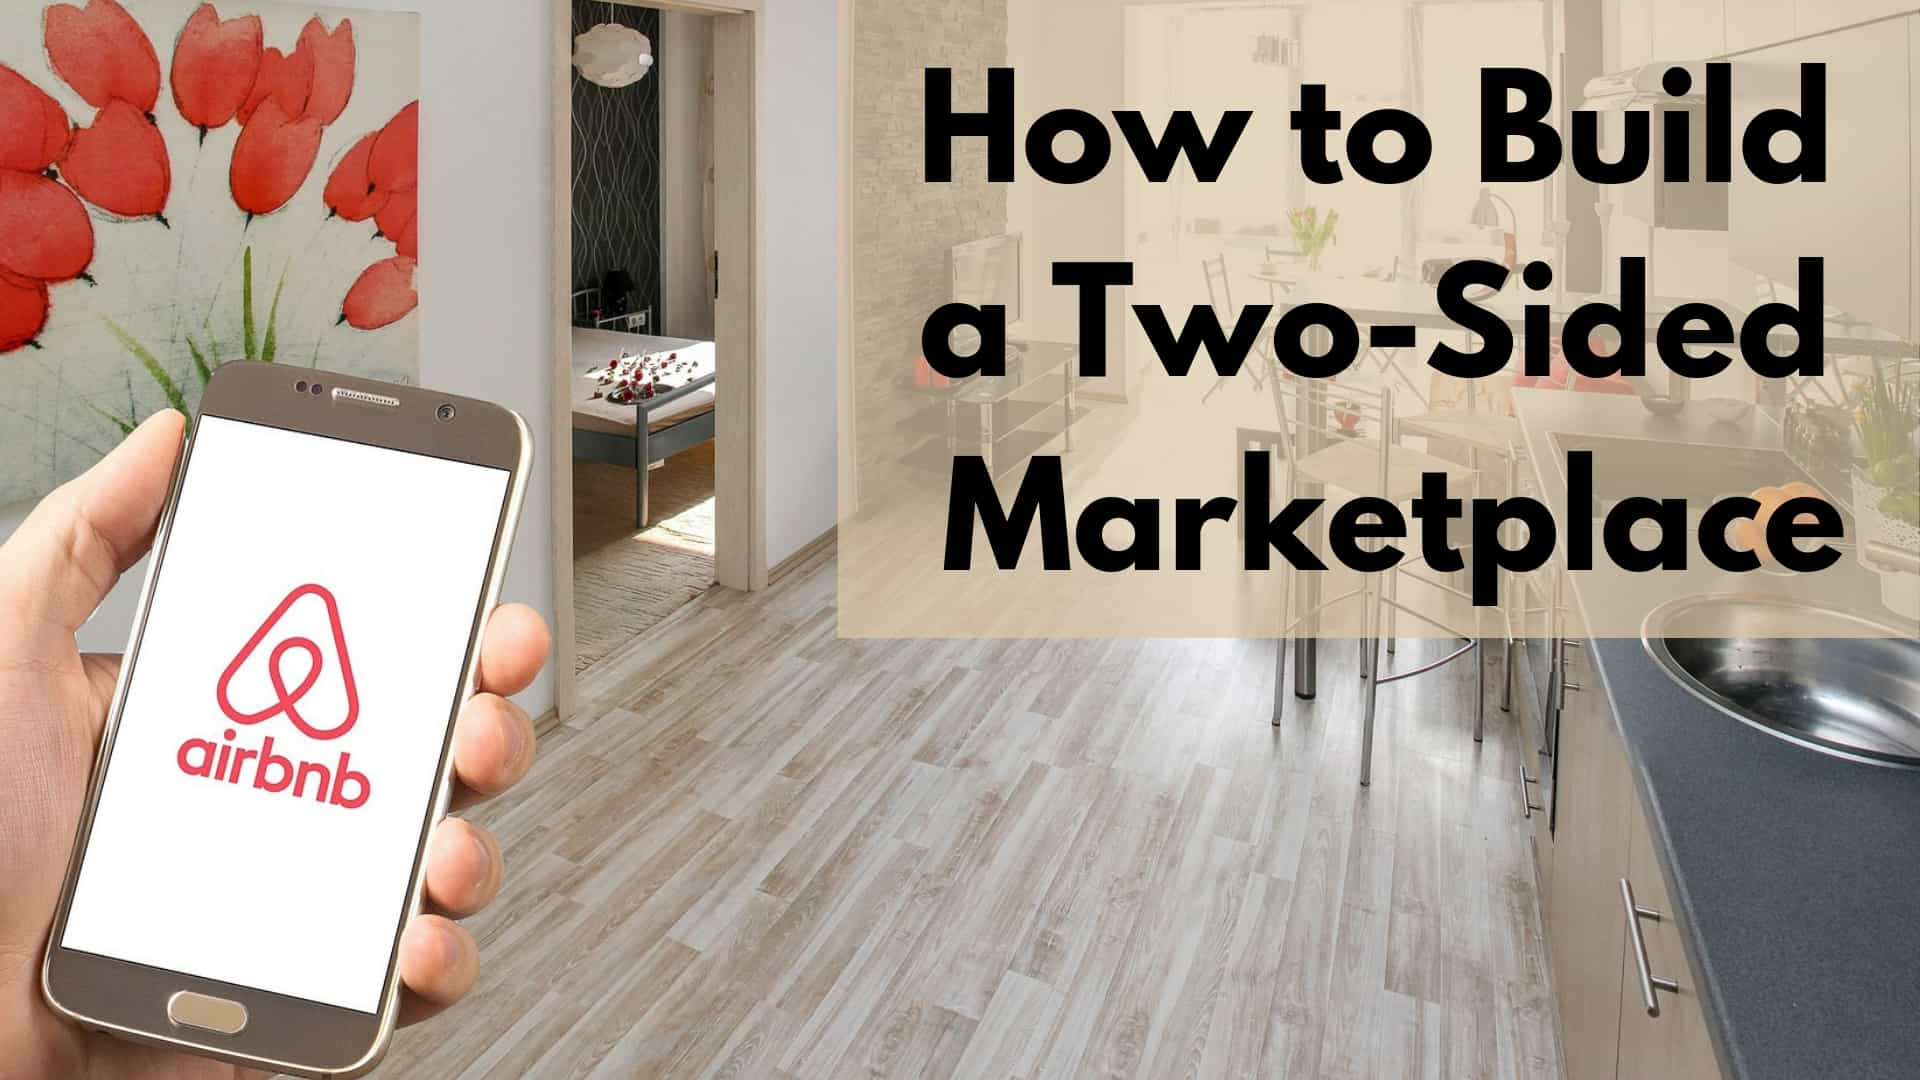 How to Build a Two-Sided Marketplace